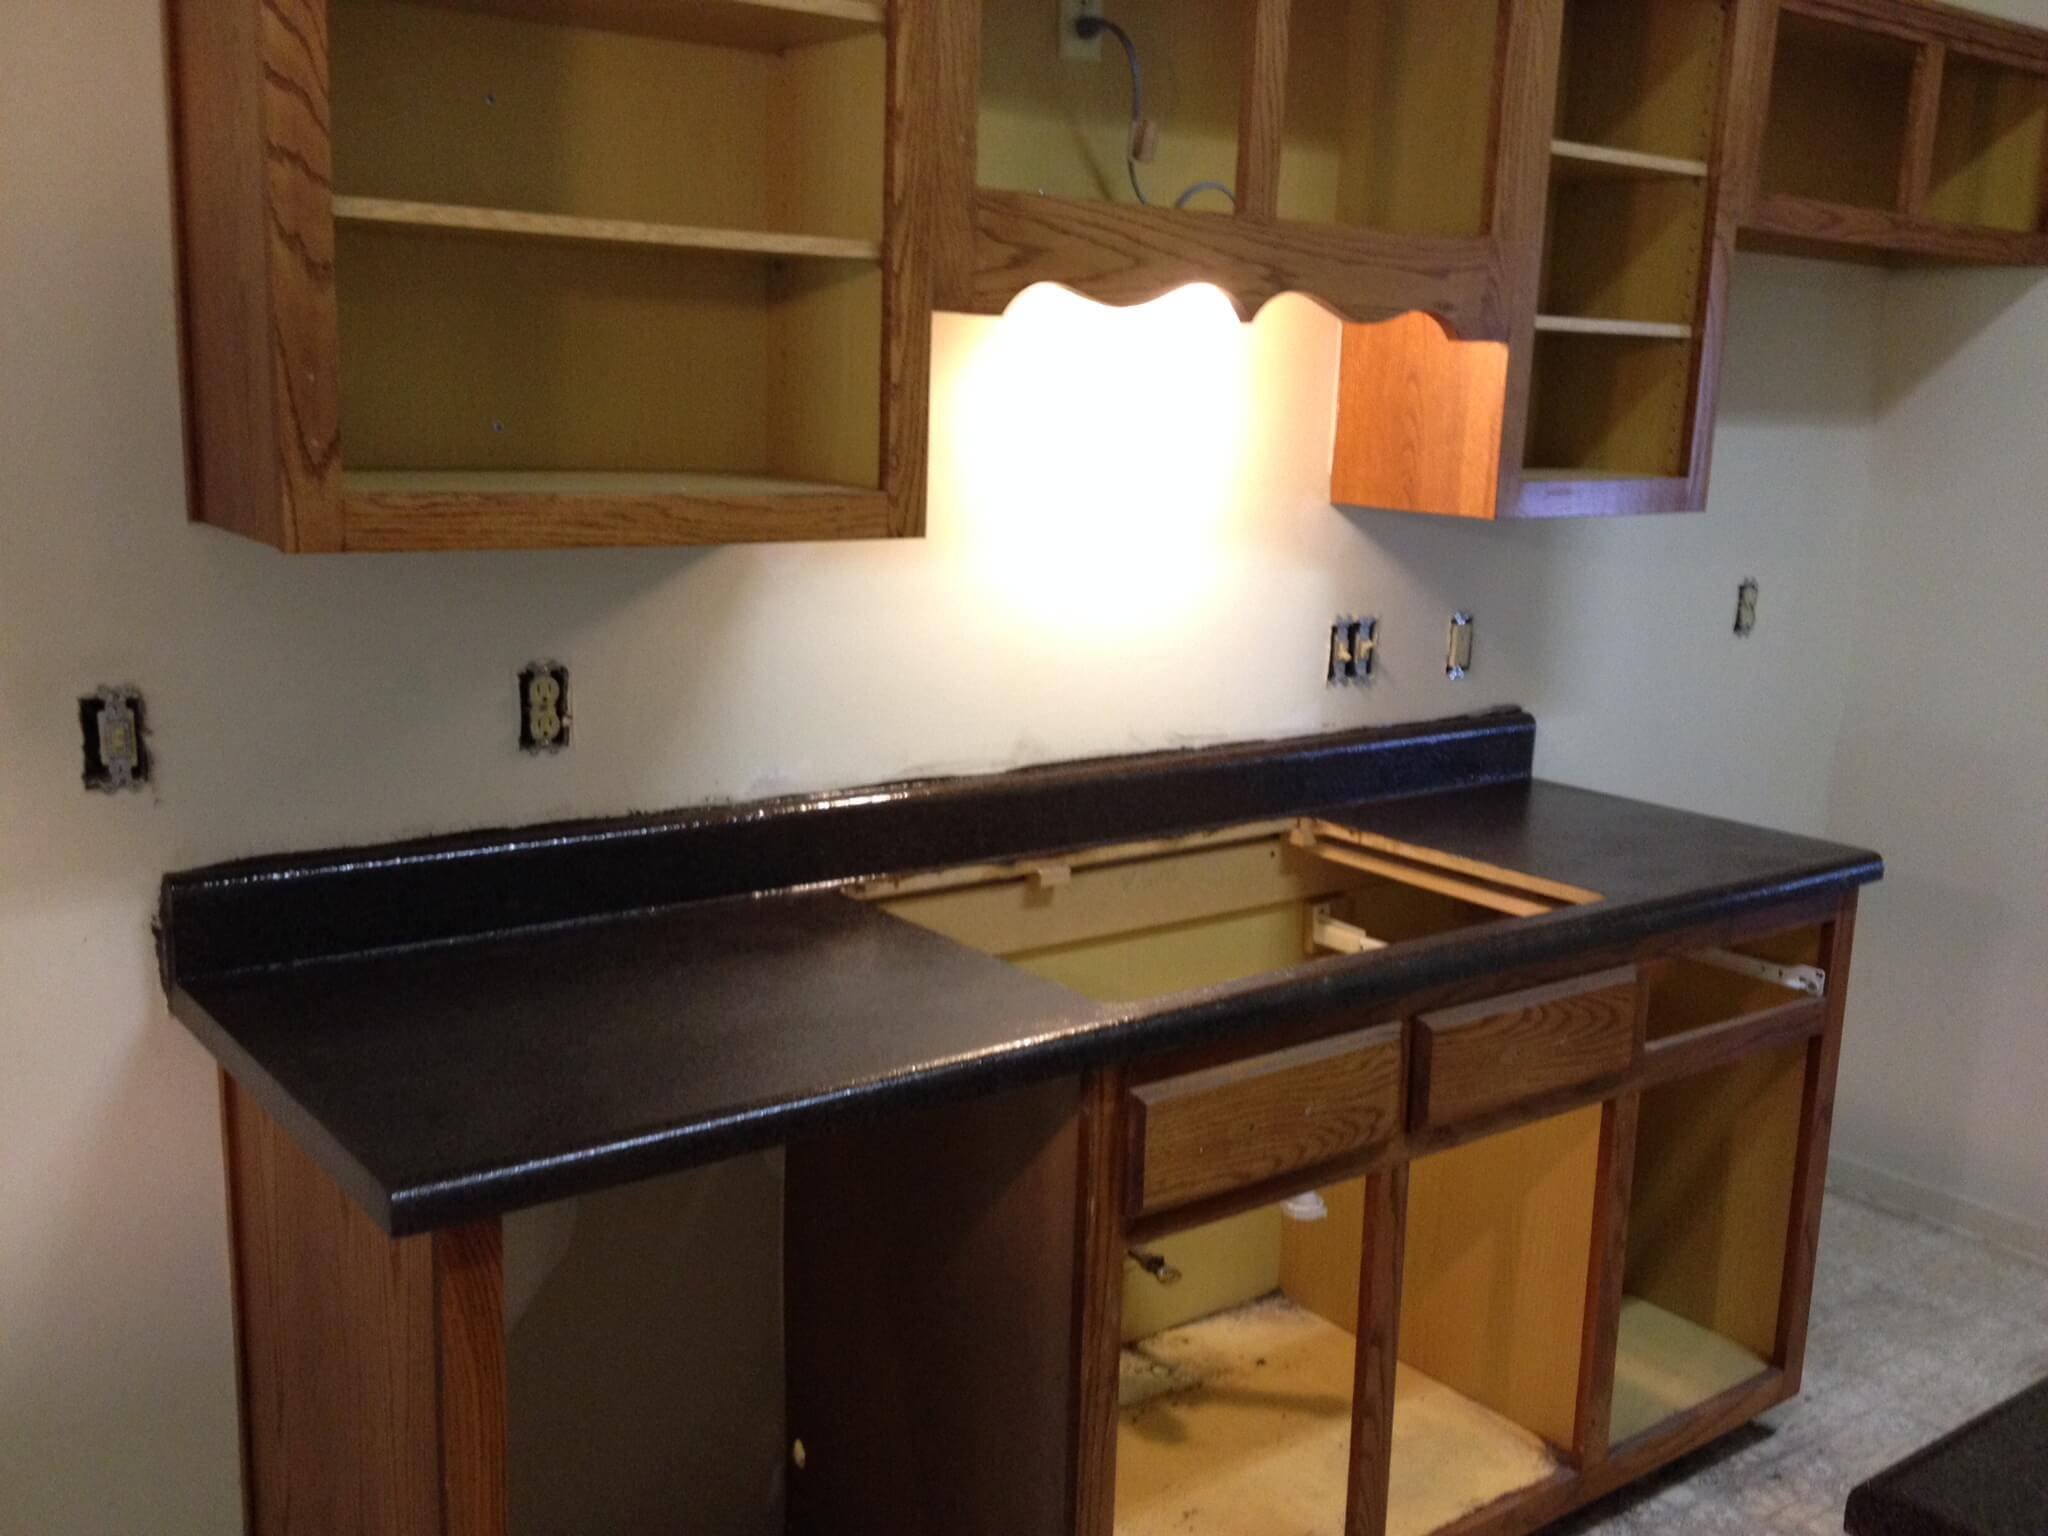 how to remodel kitchen china a 20 year old for less than 3 000 on budget young finances